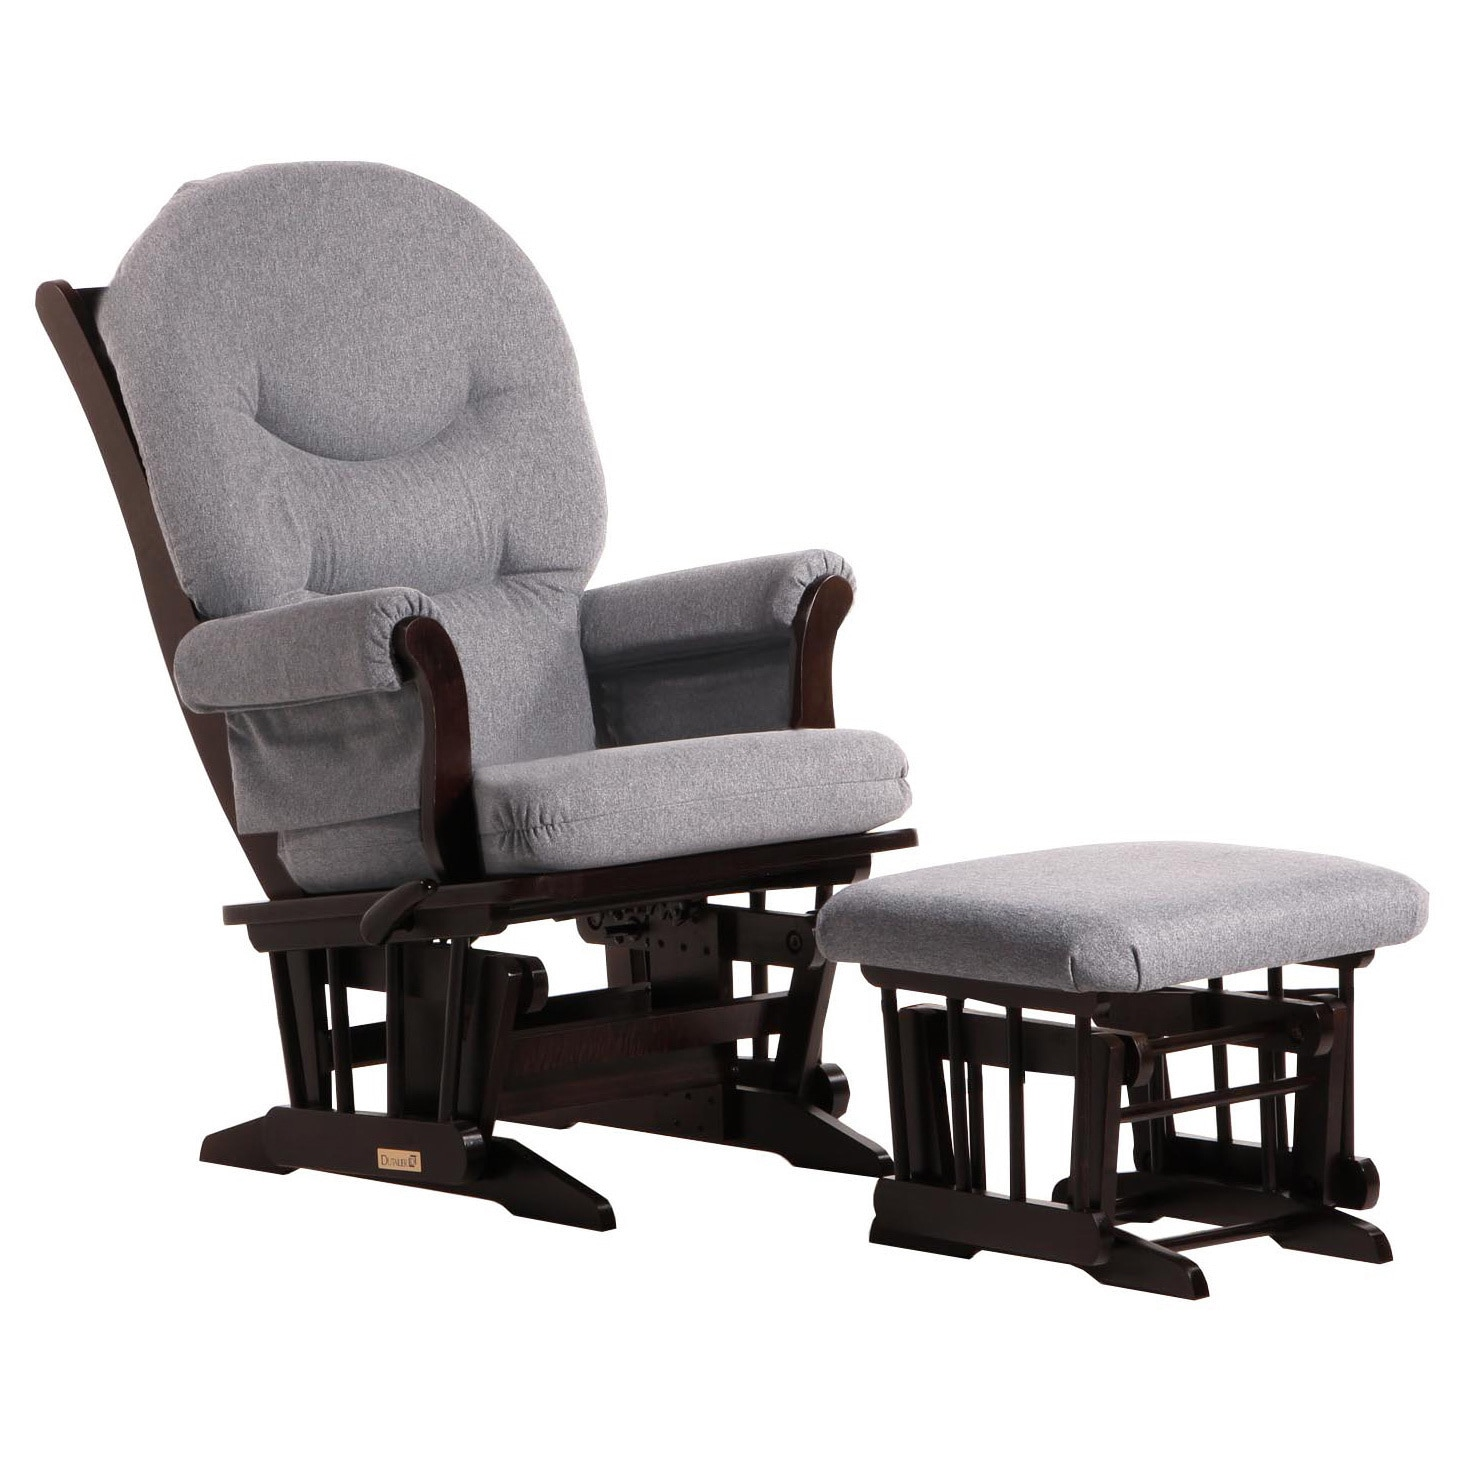 hd sets ikea set interesting for babies armchair ottoman us reclining r glider and